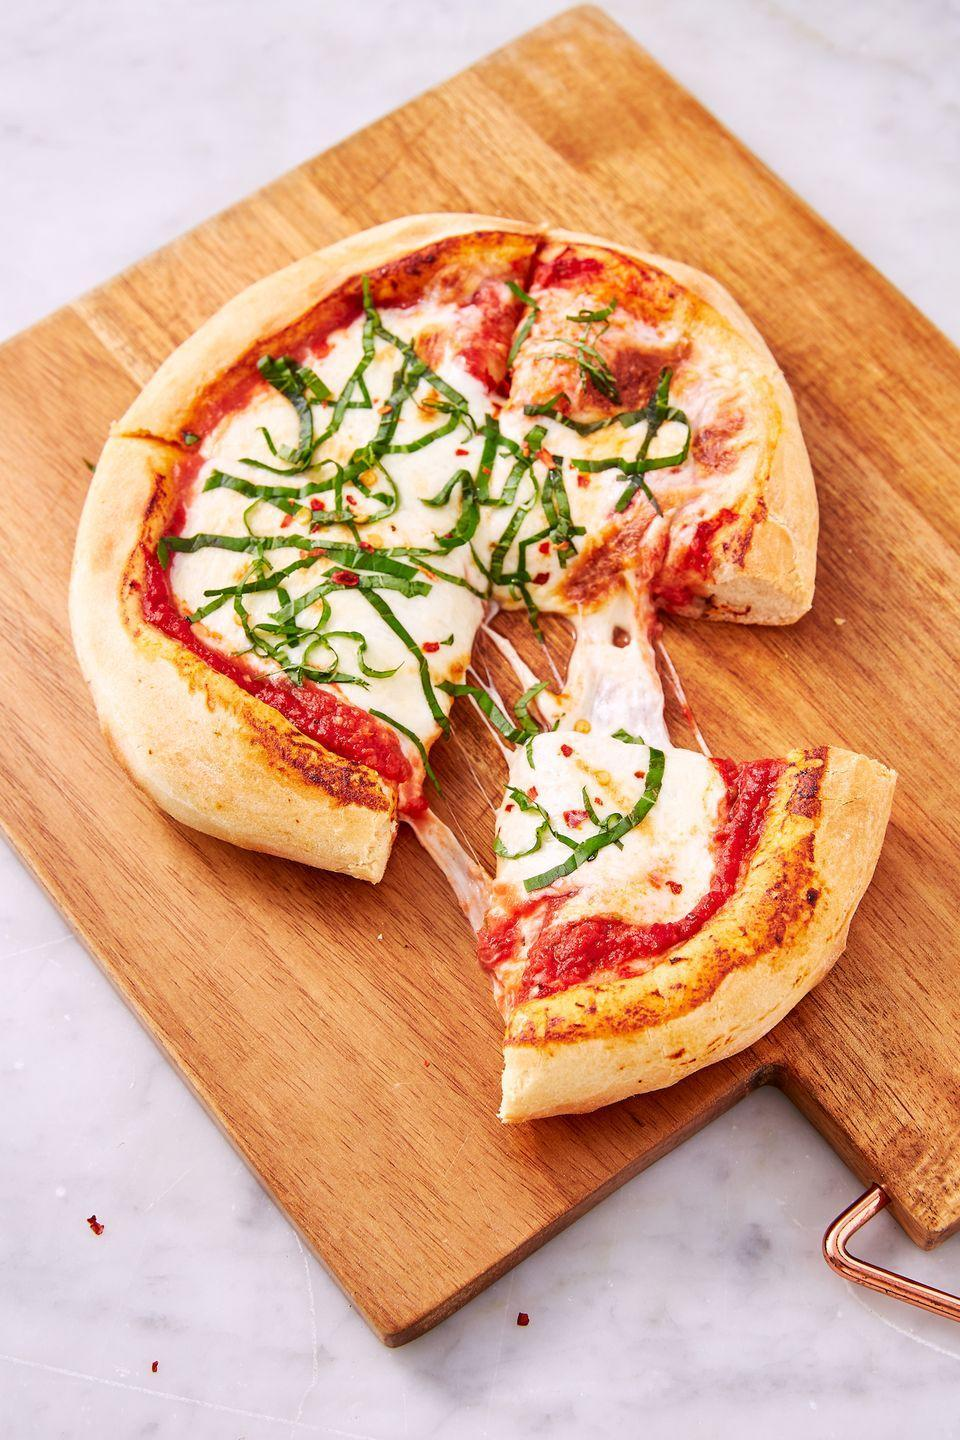 """<p>Once you go air fryer you'll never go back. </p><p>Get the recipe from <a href=""""https://www.delish.com/cooking/recipe-ideas/a28563446/air-fryer-pizza-recipe/"""" rel=""""nofollow noopener"""" target=""""_blank"""" data-ylk=""""slk:Delish"""" class=""""link rapid-noclick-resp"""">Delish</a>.</p>"""